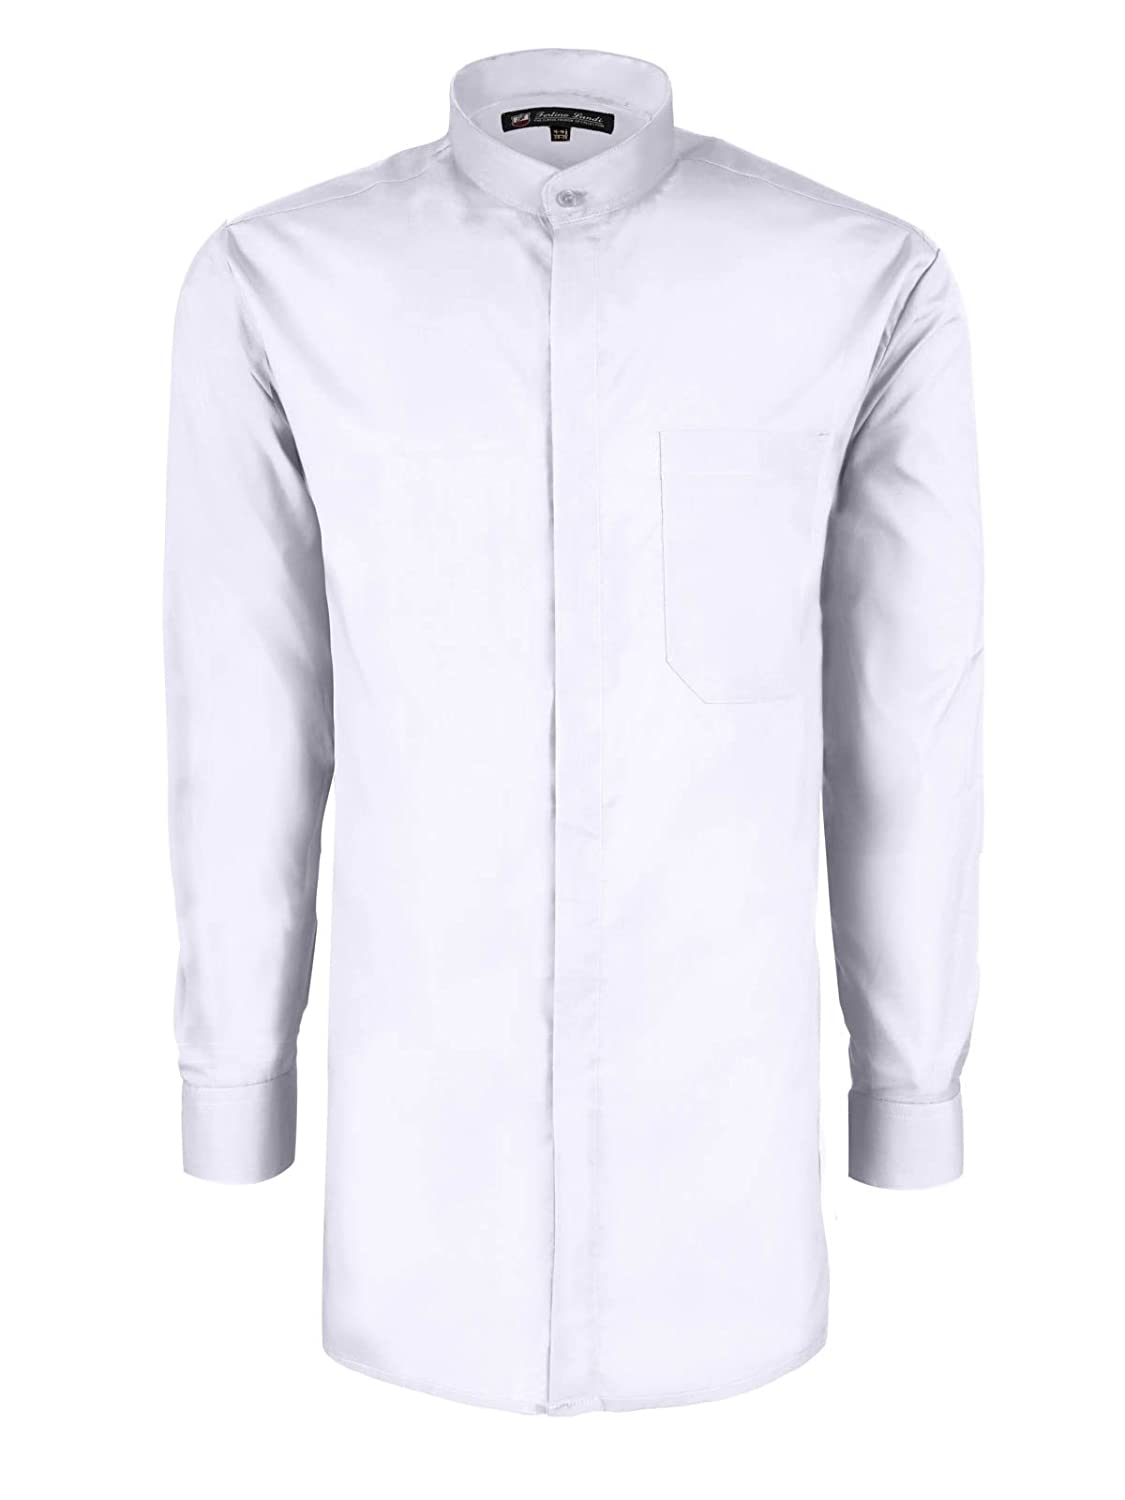 1920s Men's Dress Shirts  Long-sleeve Banded Collar Shirt - Many Colors Available $18.99 AT vintagedancer.com